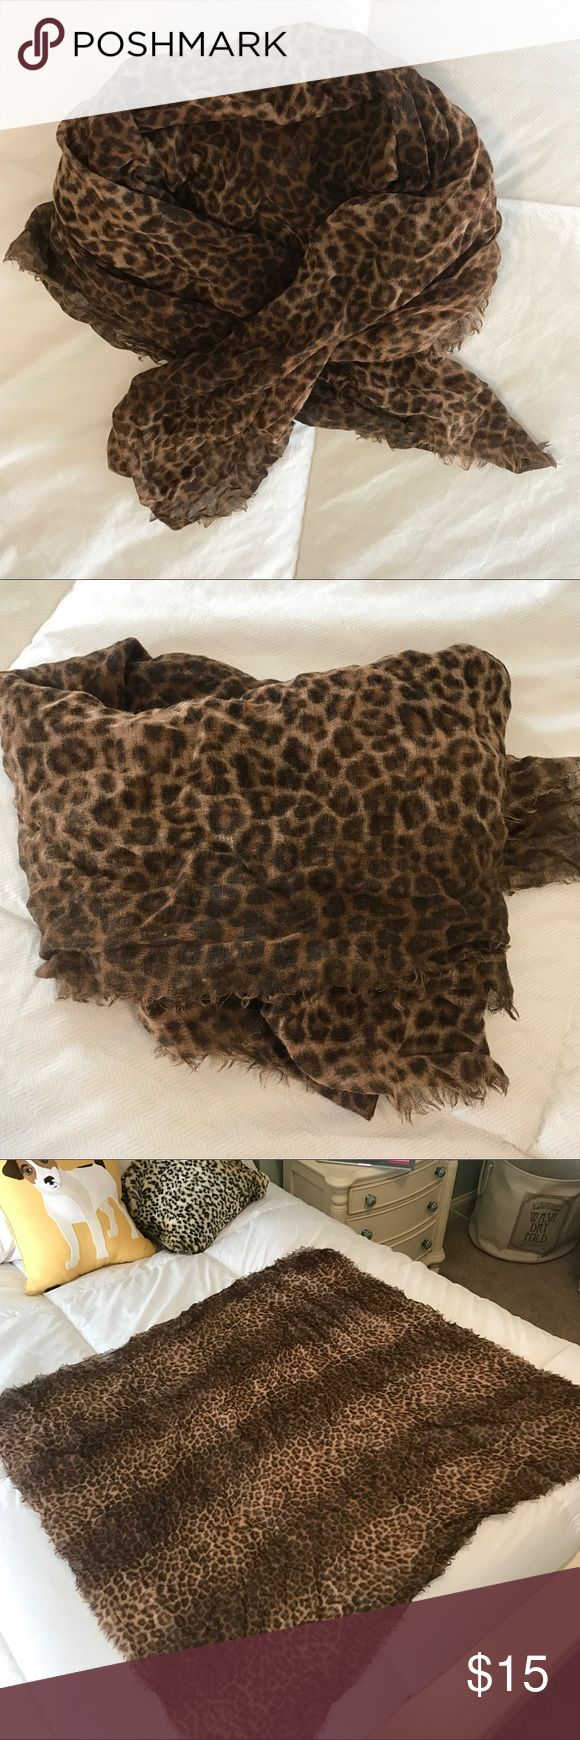 Lucky Brand Cheetah Scarf Large square Lucky Brand linen-blend scarf. 'Unfinished' edges. Tags have been removed. I didn't see any holes, rips, or pulls. Open to offers. Lucky Brand Accessories Scarves & Wraps